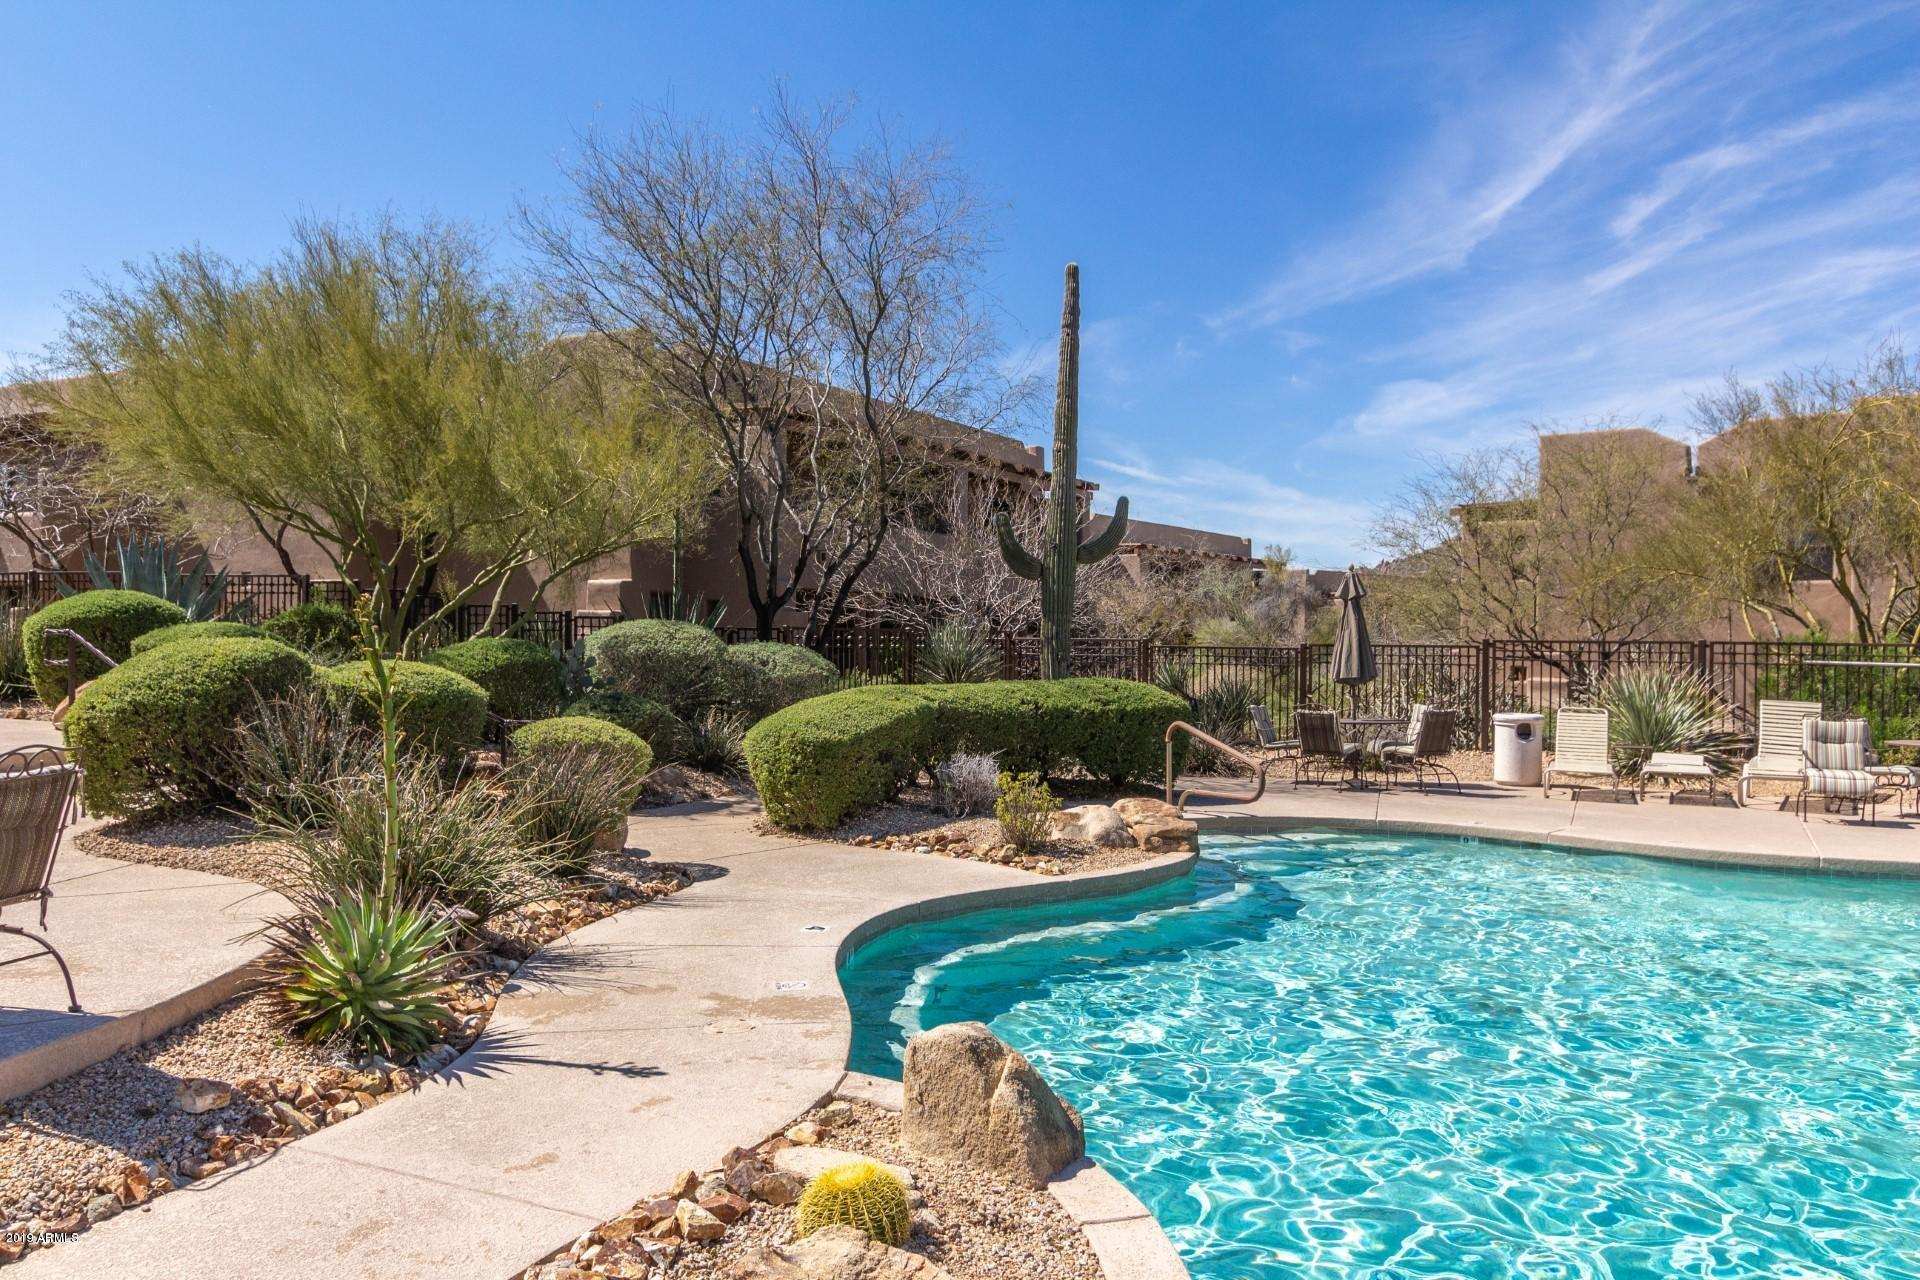 MLS 5912995 36601 N Mule Train Road Unit 7A Building 7, Carefree, AZ 85377 Carefree AZ Condo or Townhome